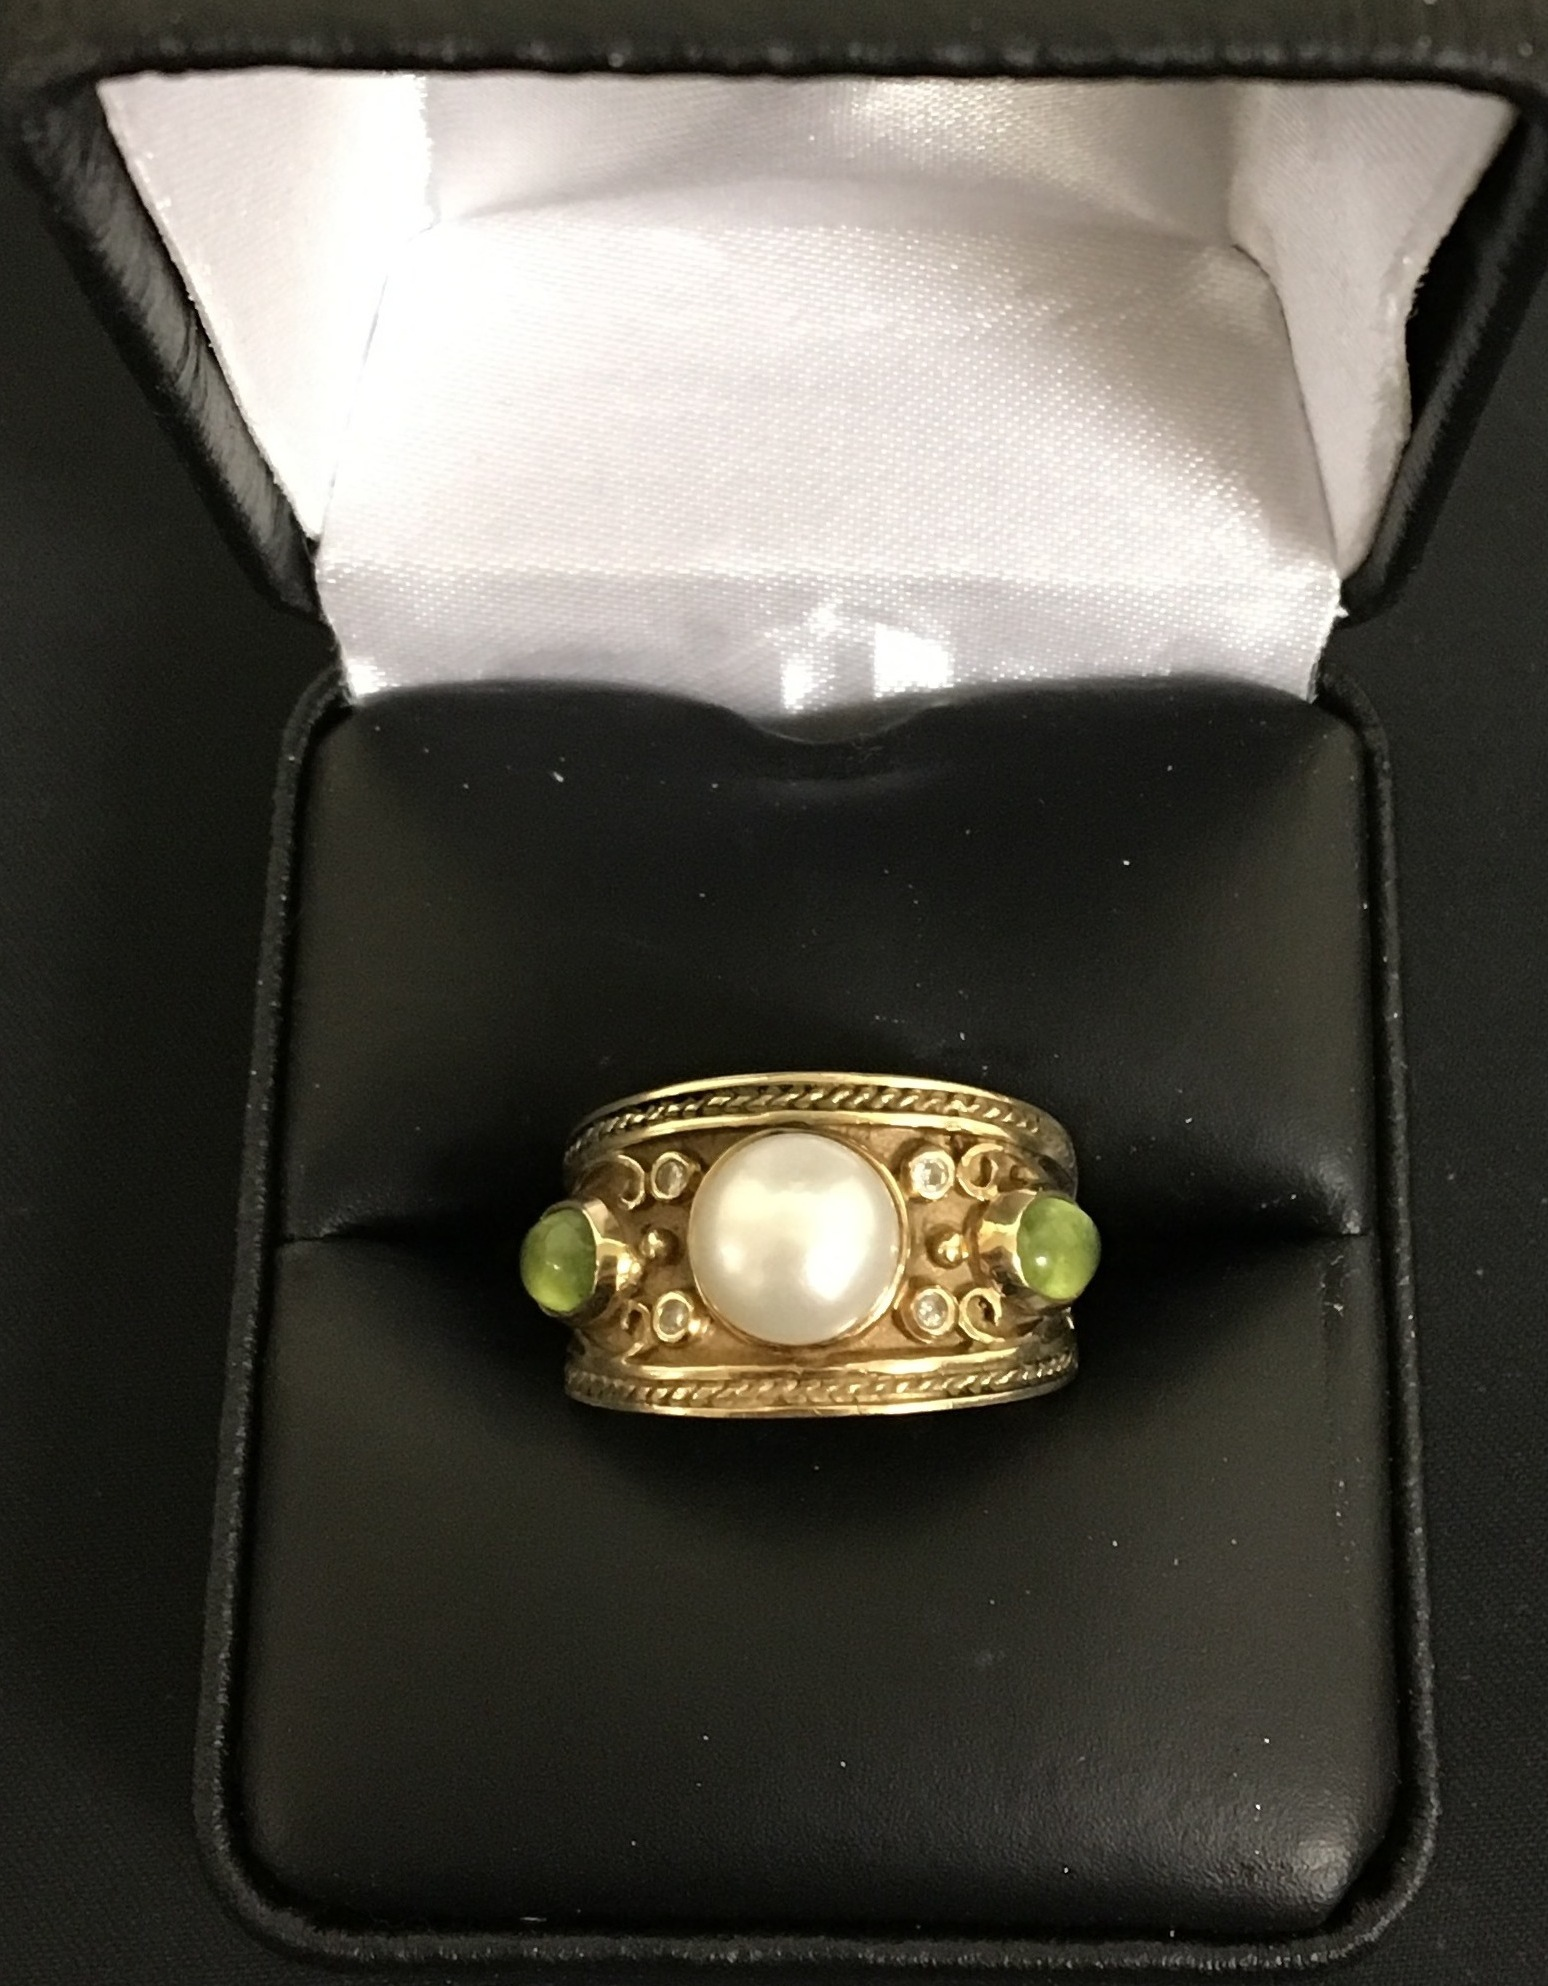 14KT SIZE 6.5 YELLOW GOLD WITH WHITE PEARL GREEN STONES W/ DIAMOND CHIPS